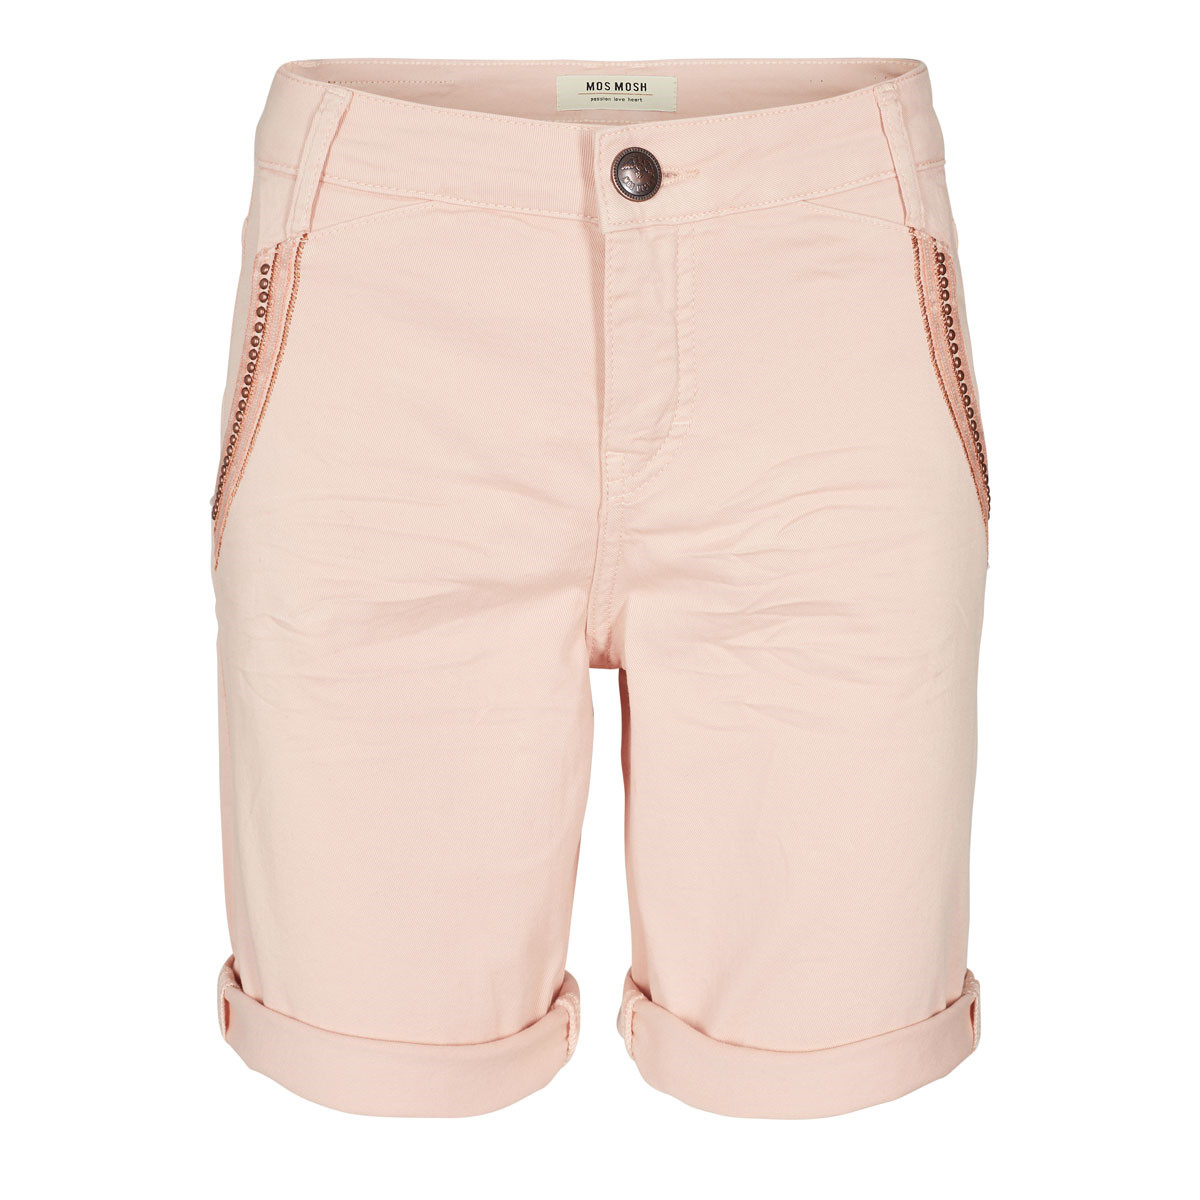 MOS MOSH SHORTS -  ETTA SHINE SOFT ROSE